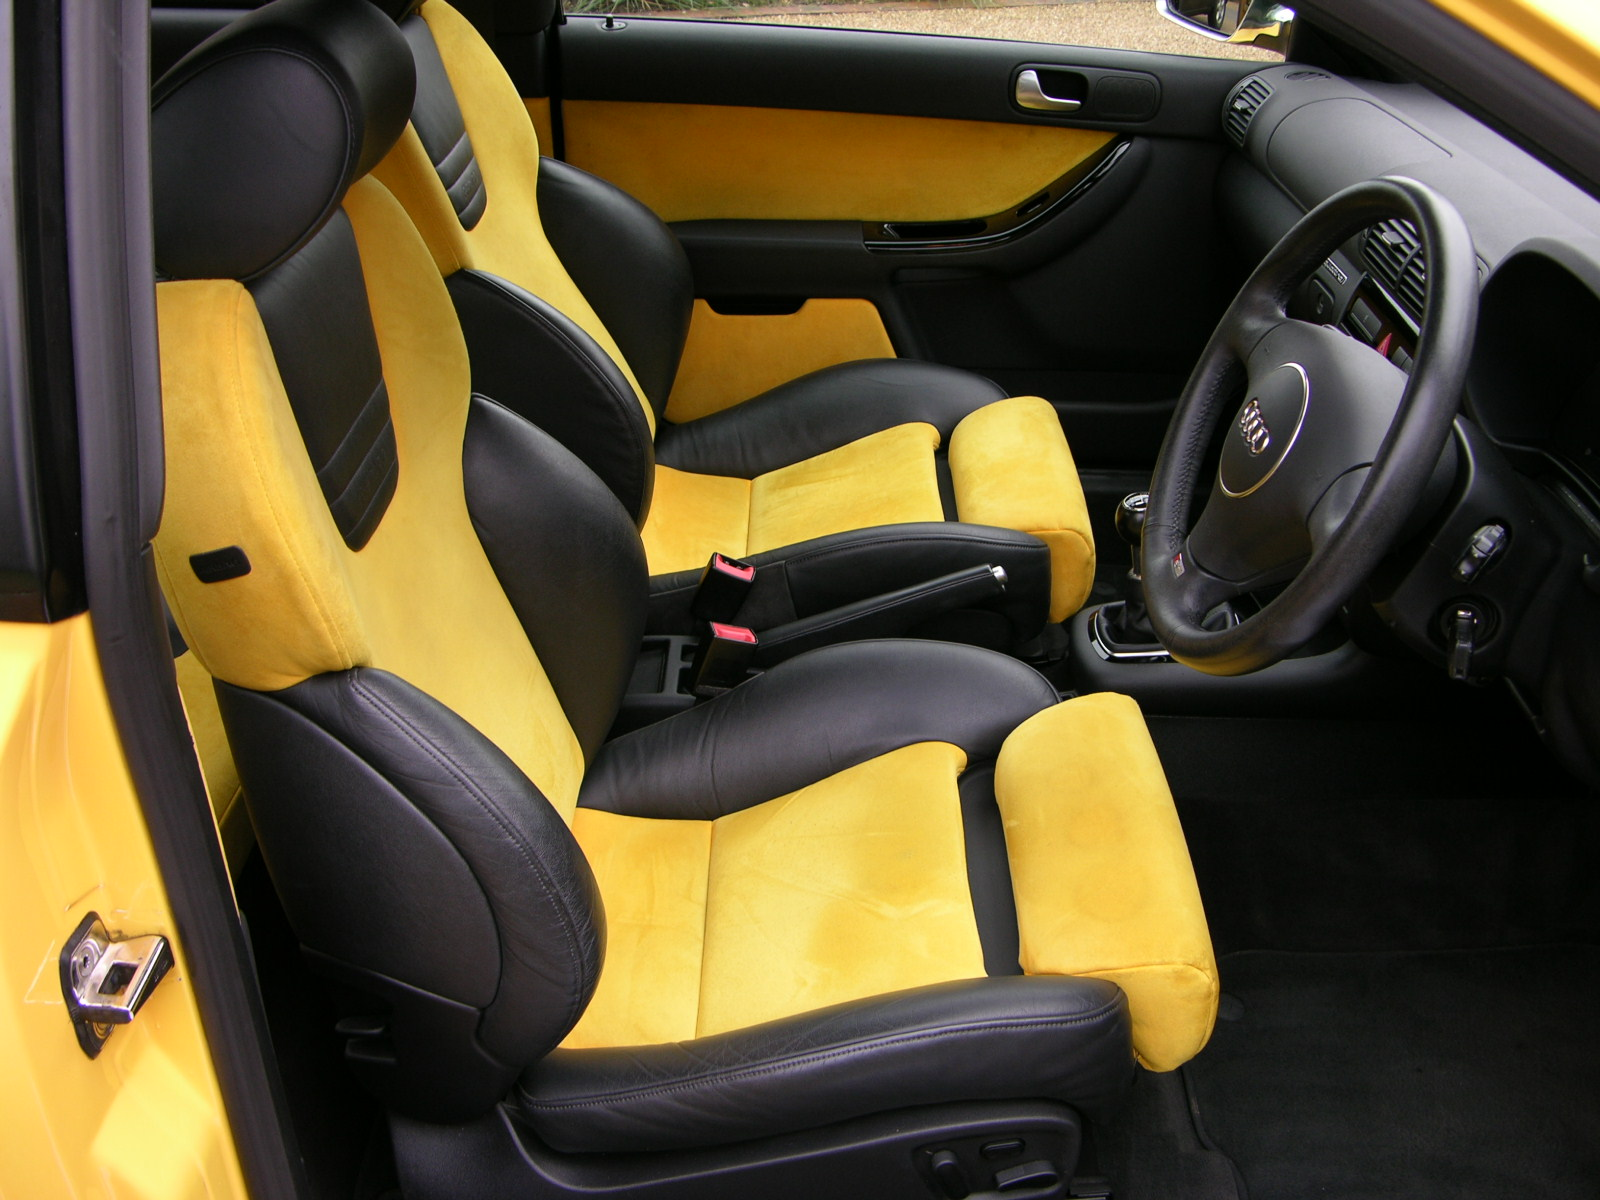 file audi s3 2002 imola yellow flickr the car spy 7 jpg wikimedia commons. Black Bedroom Furniture Sets. Home Design Ideas